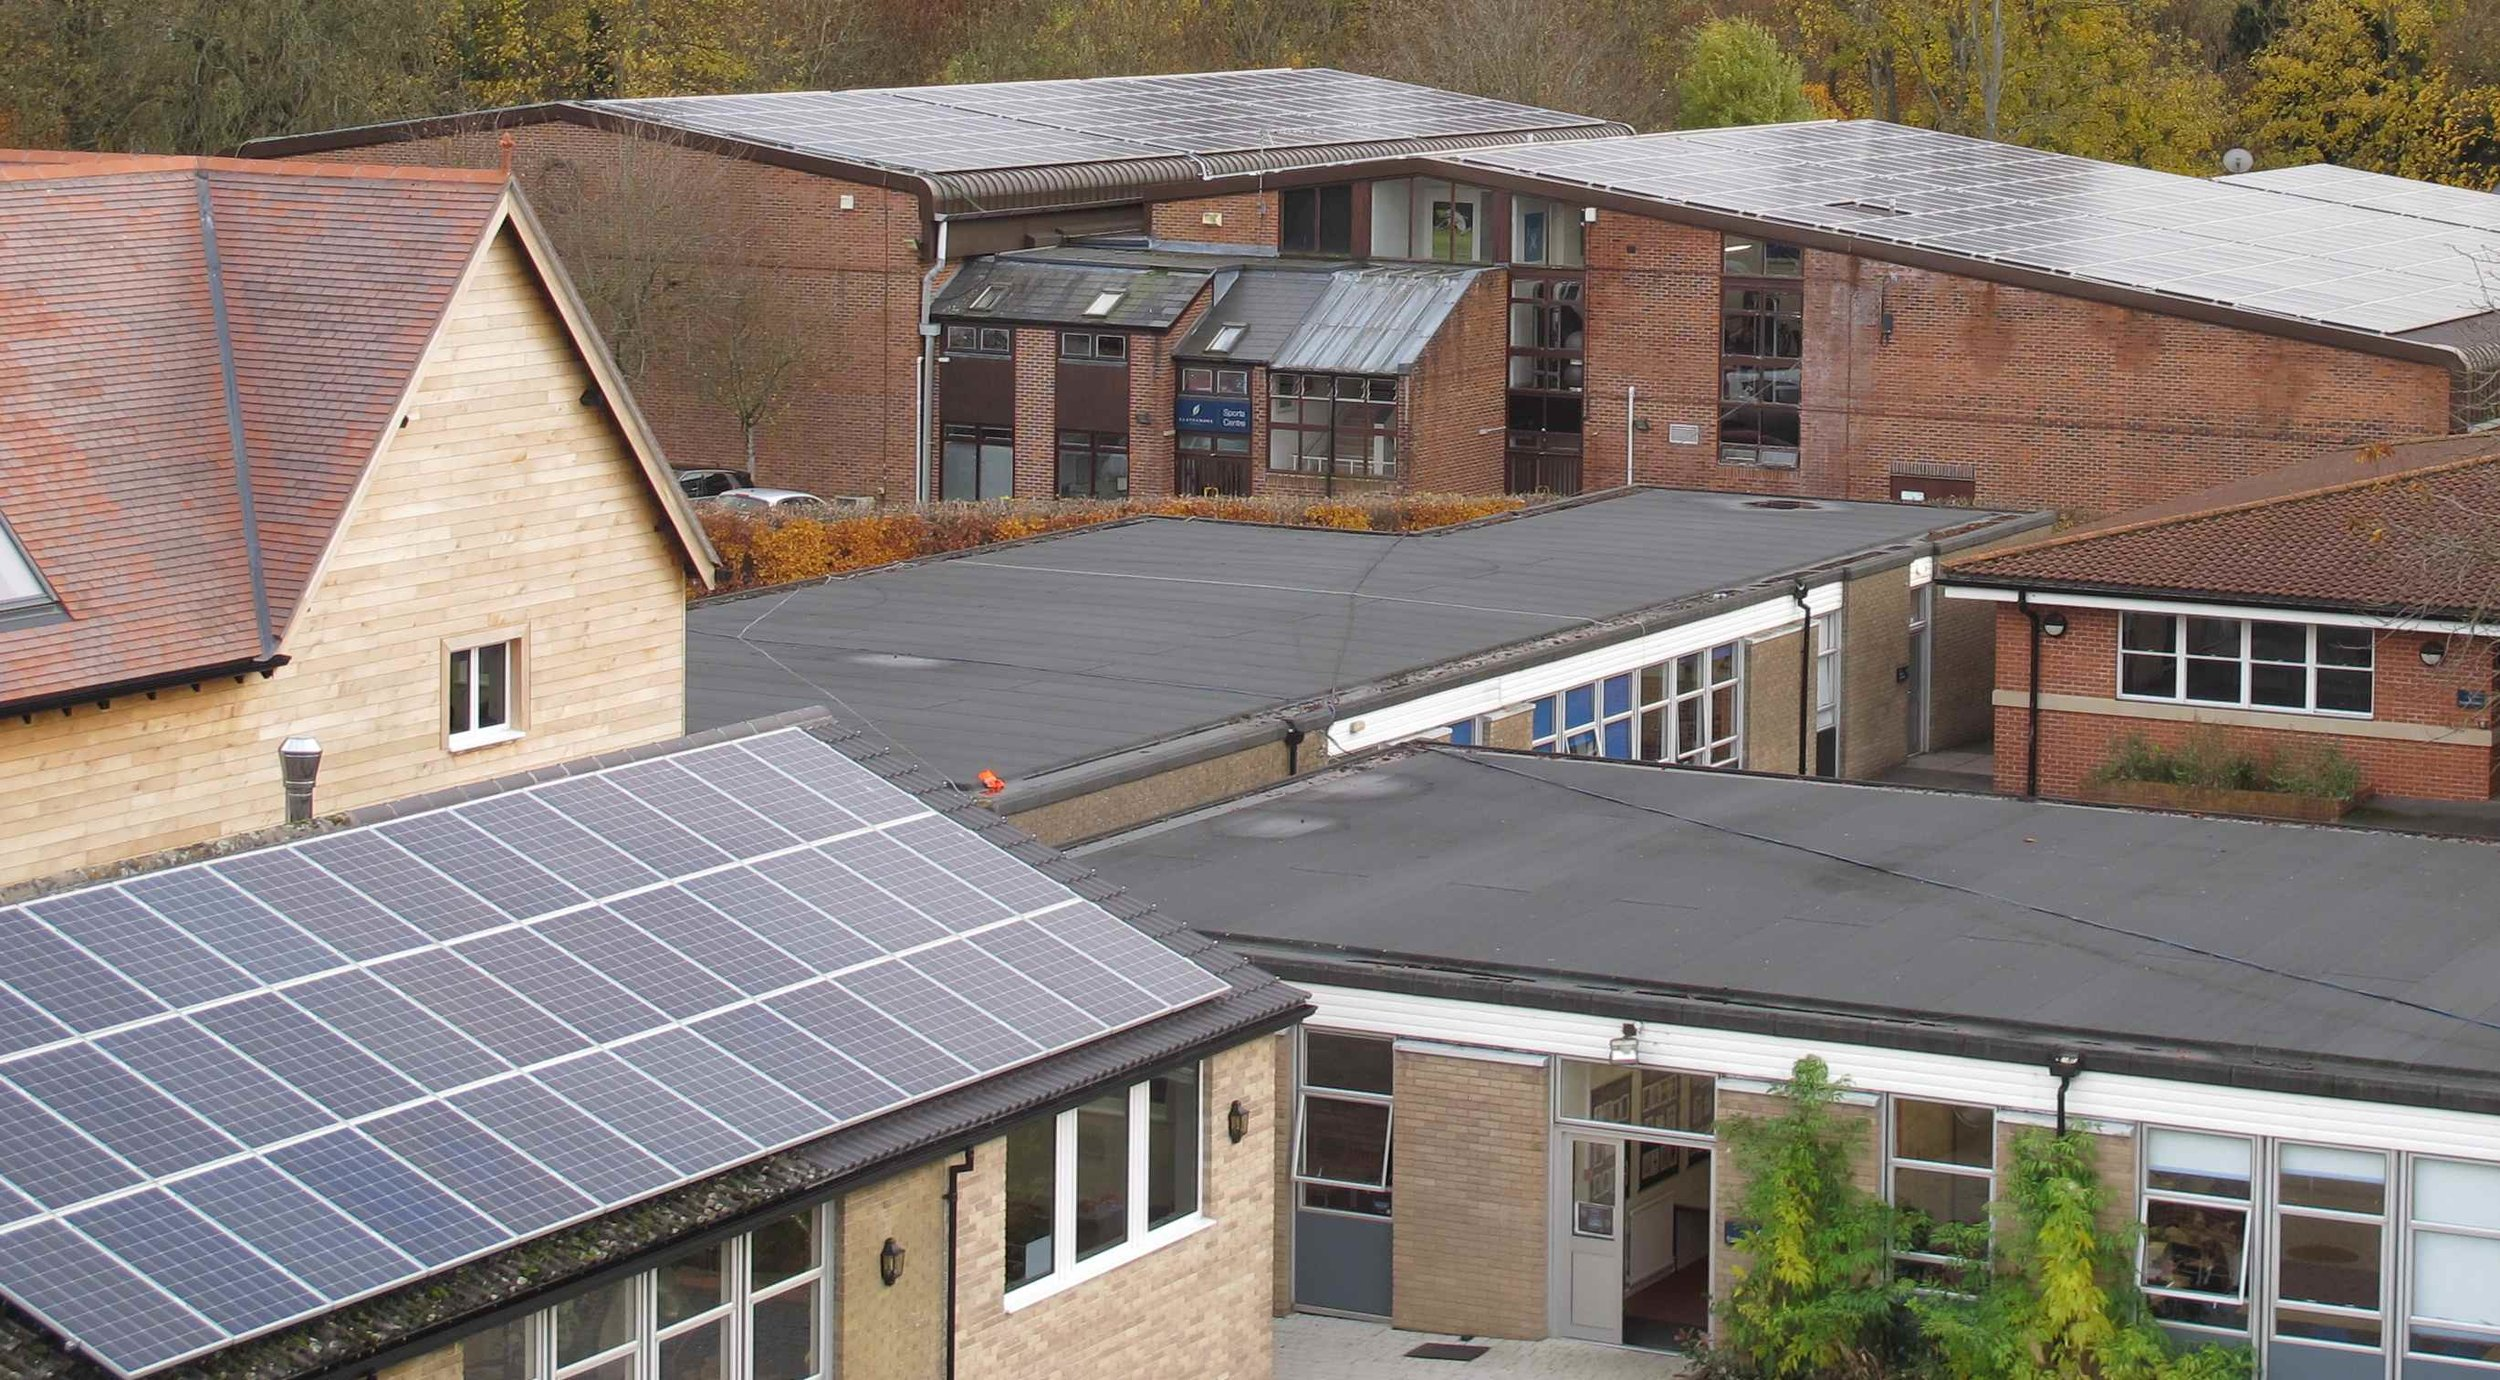 Clayesmore School Rooftop PV arrays